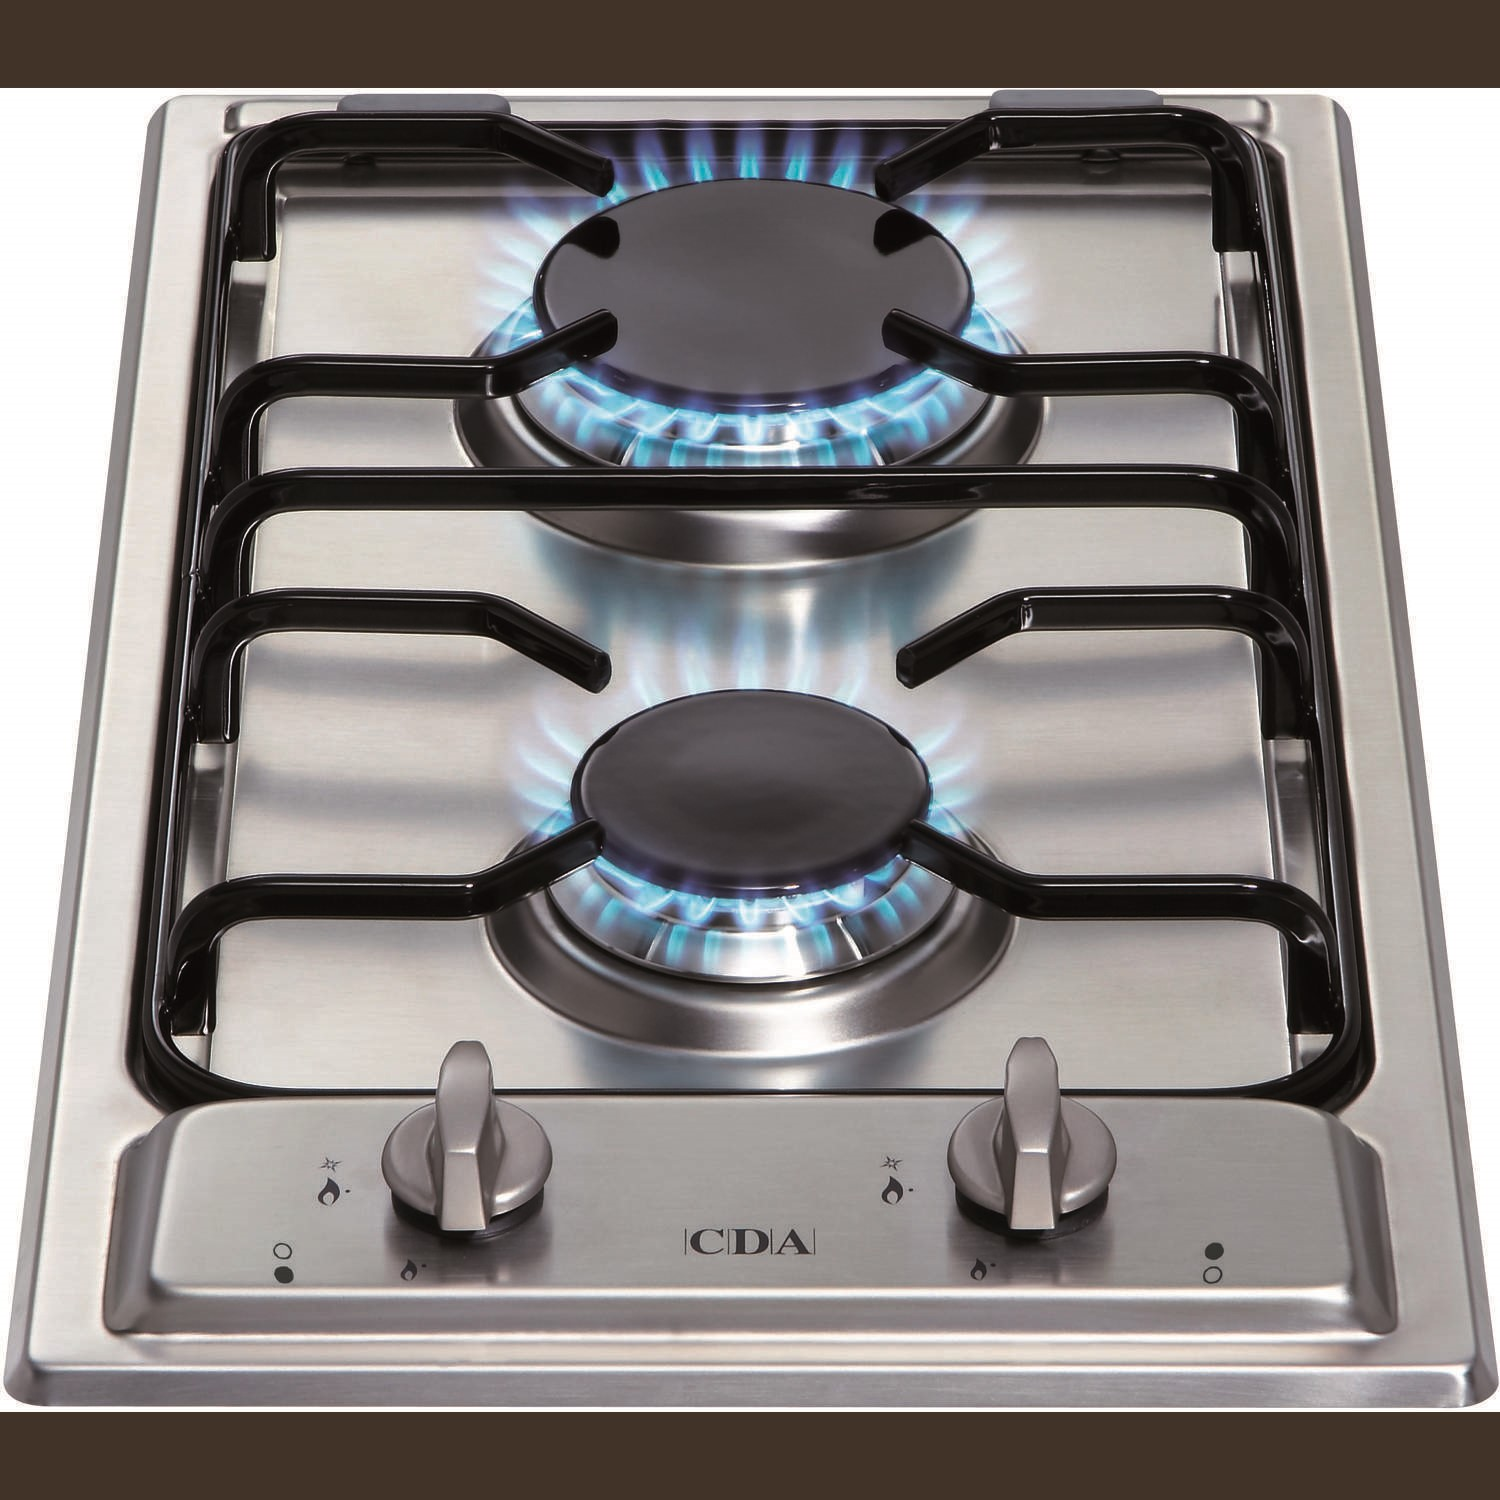 Cda Hcg301ss 29cm Domino Two Burner Gas Hob Stainless